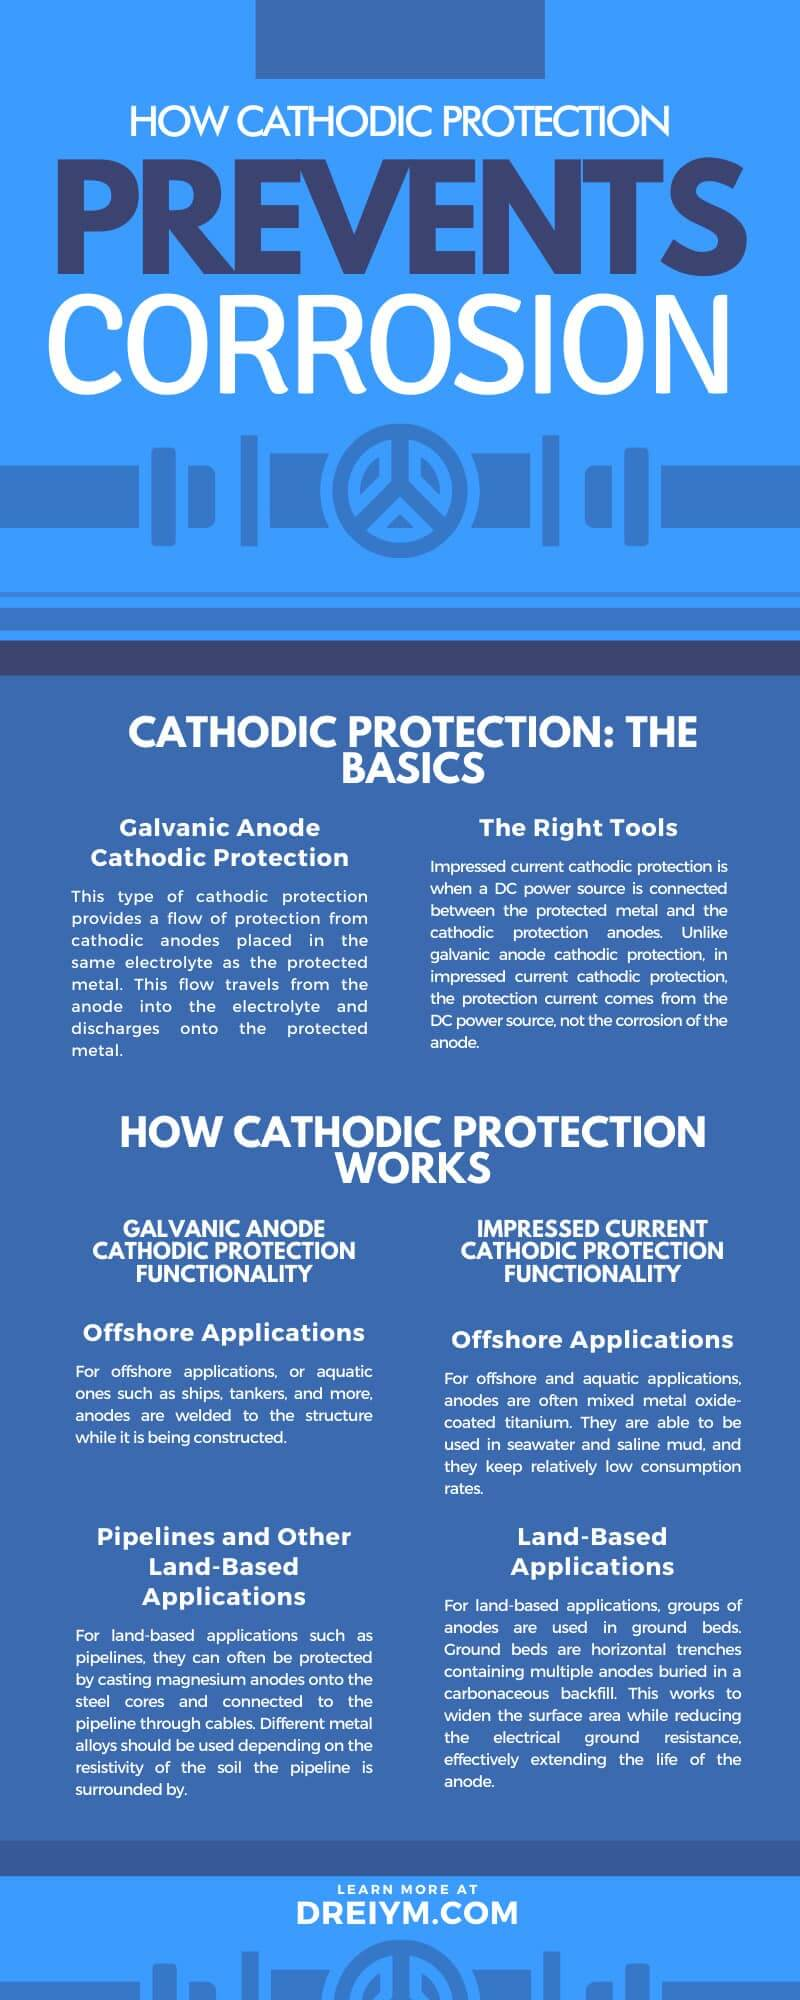 How Cathodic Protection Prevents Corrosion